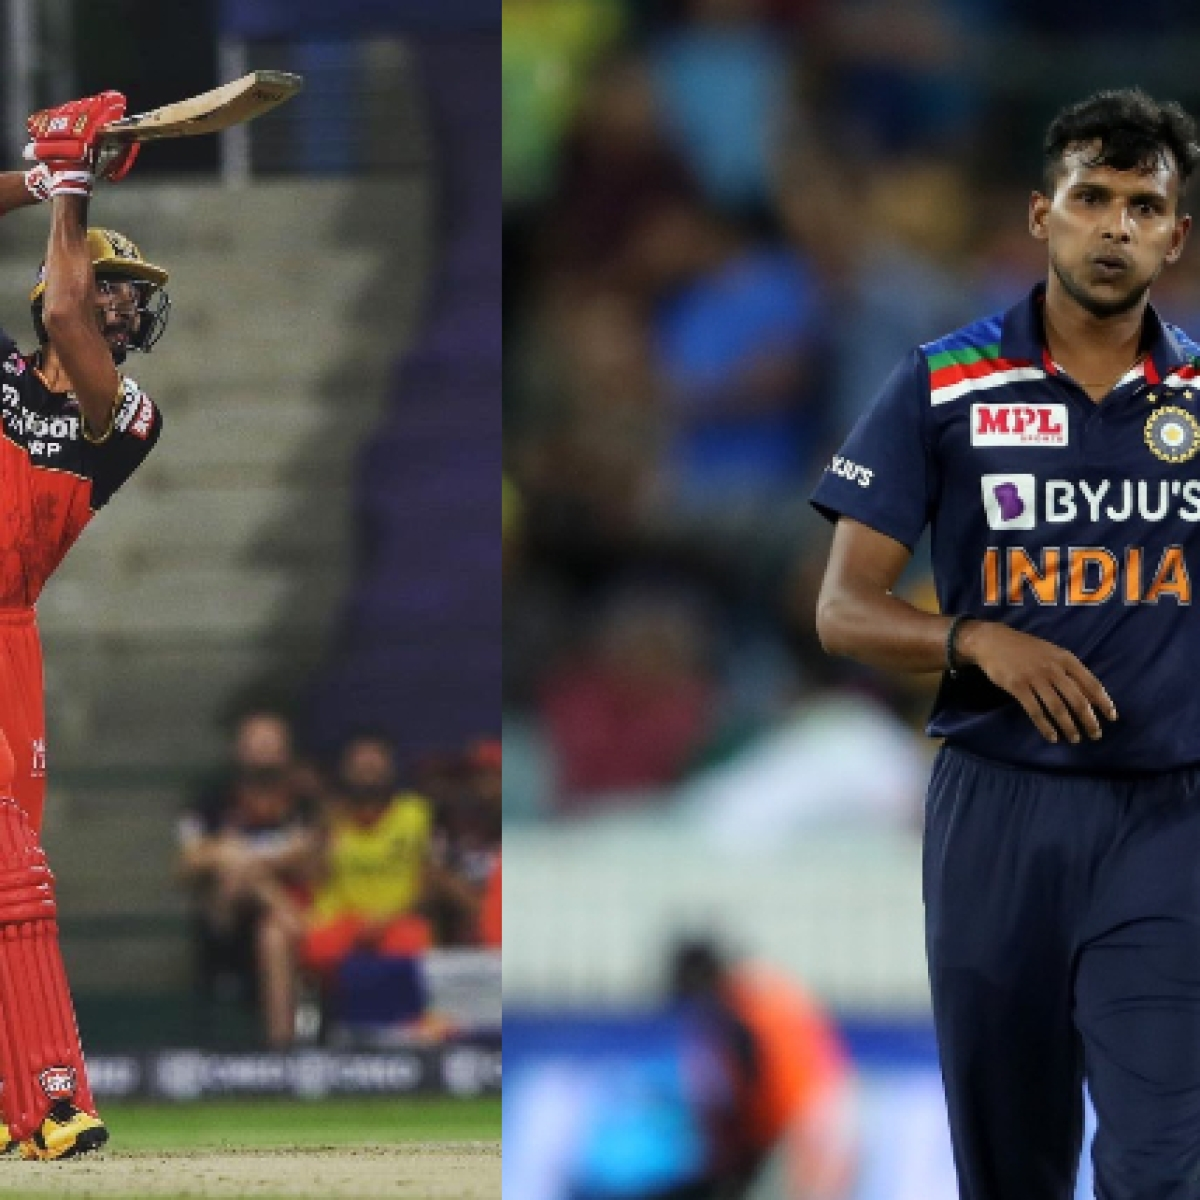 From T Natarajan to Devdutt Padikkal, five young Indian cricketers to look forward to in 2021